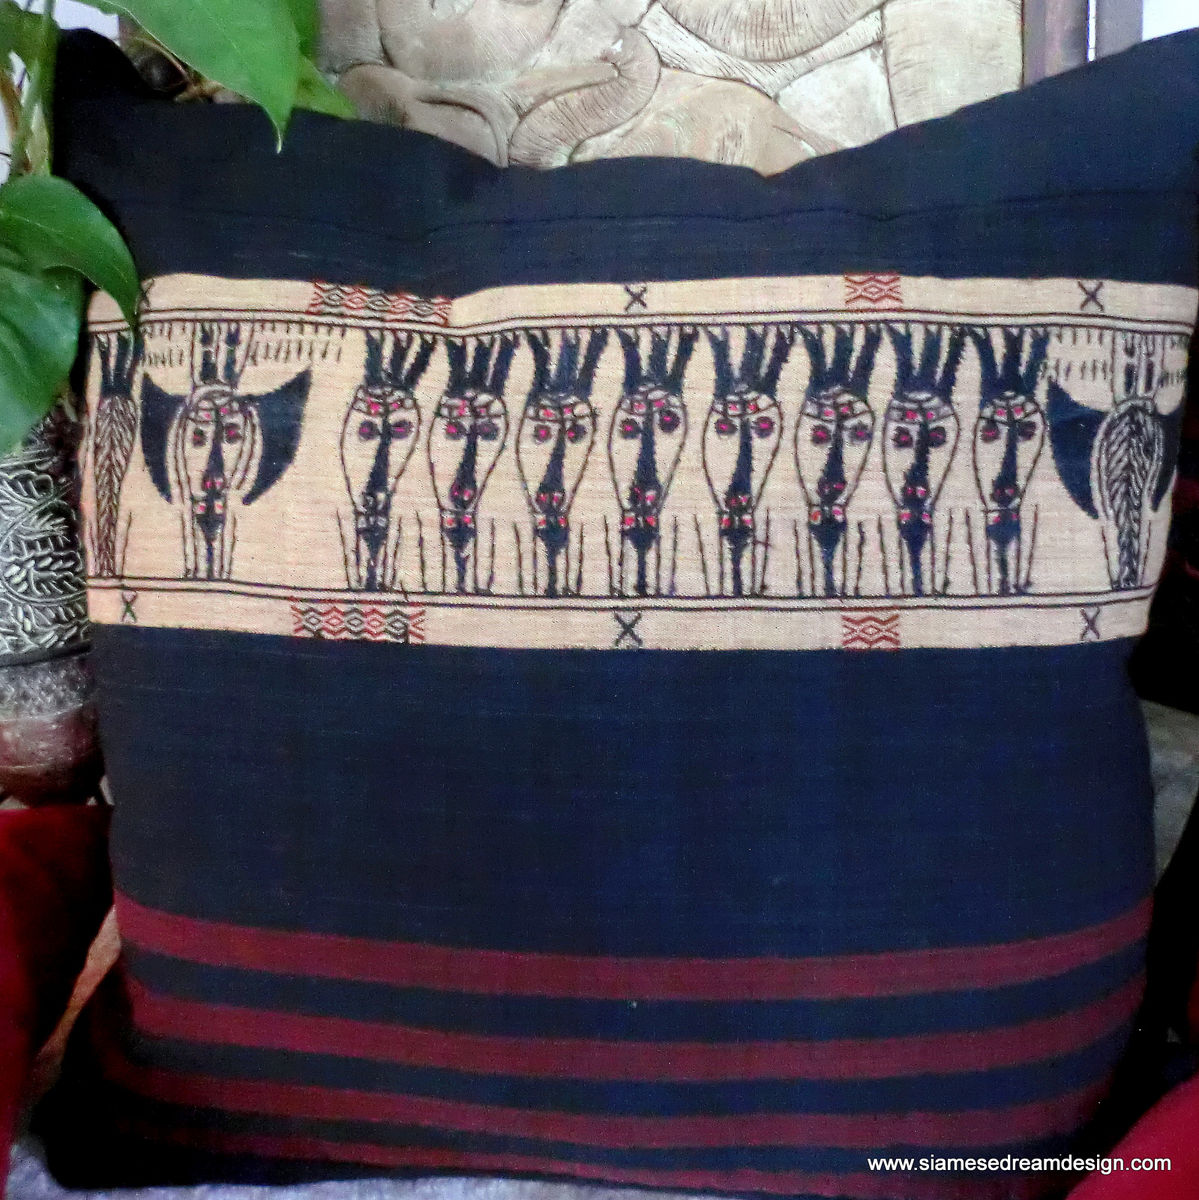 "30"" Tribal Naga XXL Embroidered Floor Pillow / Cushion Covers - product images  of"